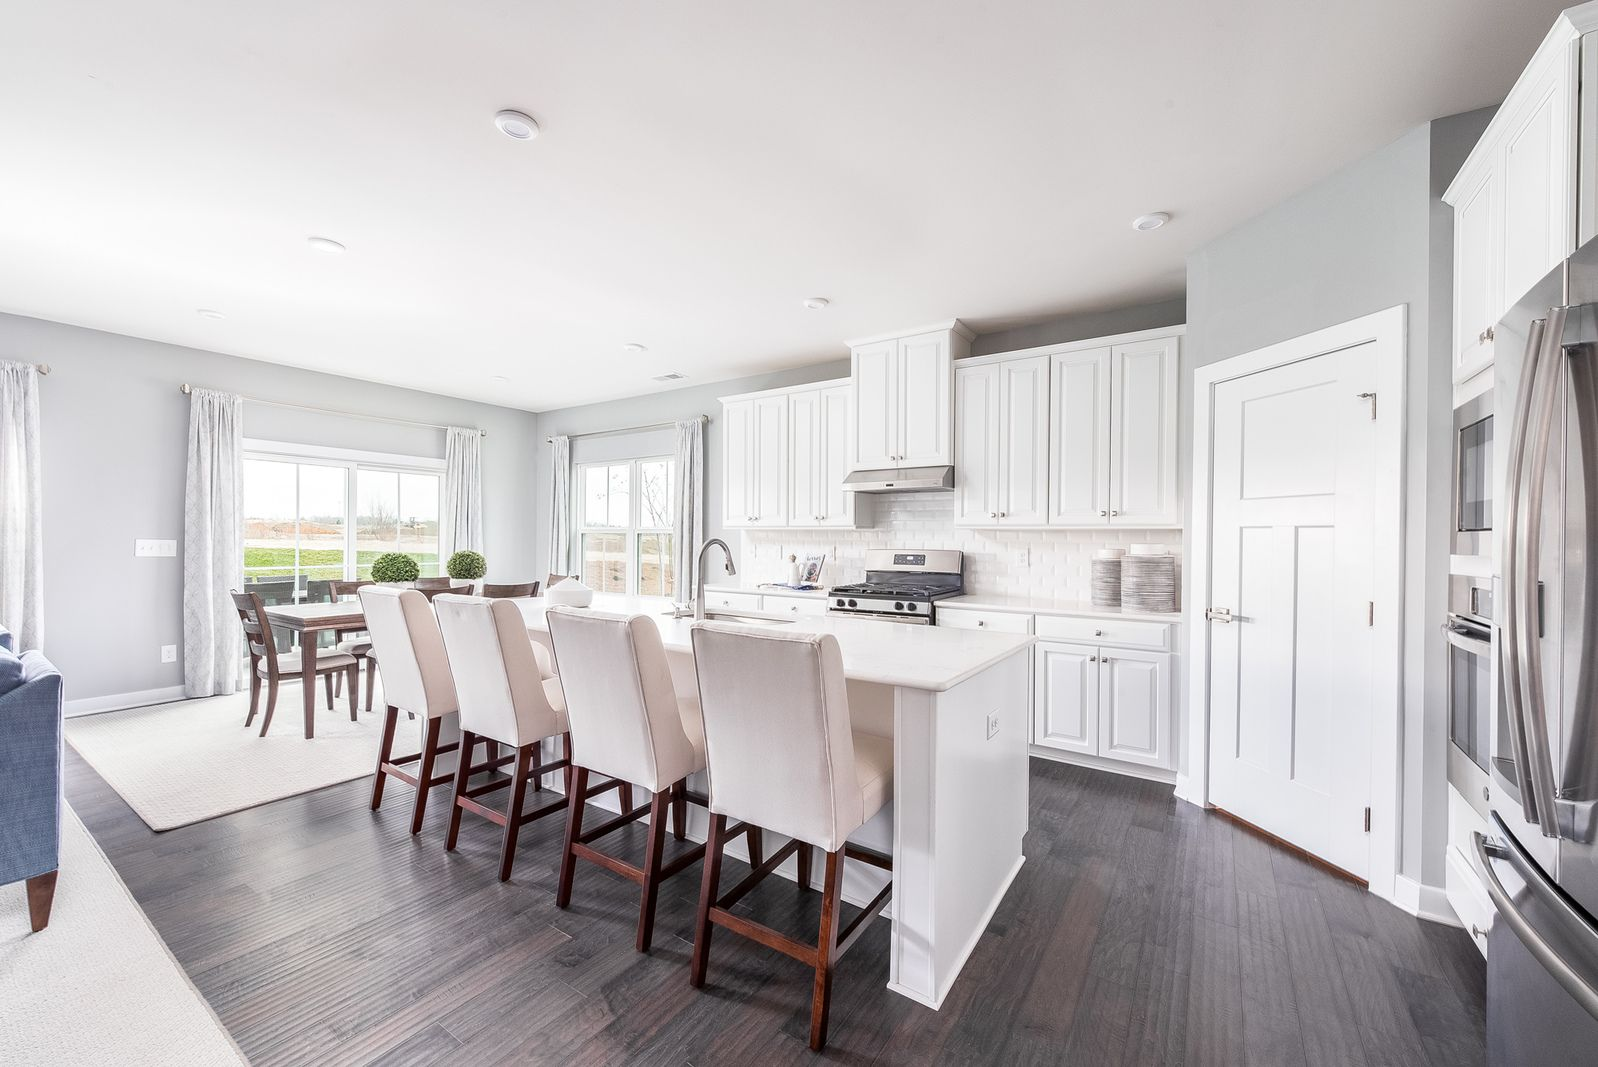 Kitchen featured in the Lehigh By Ryan Homes in Columbia, SC